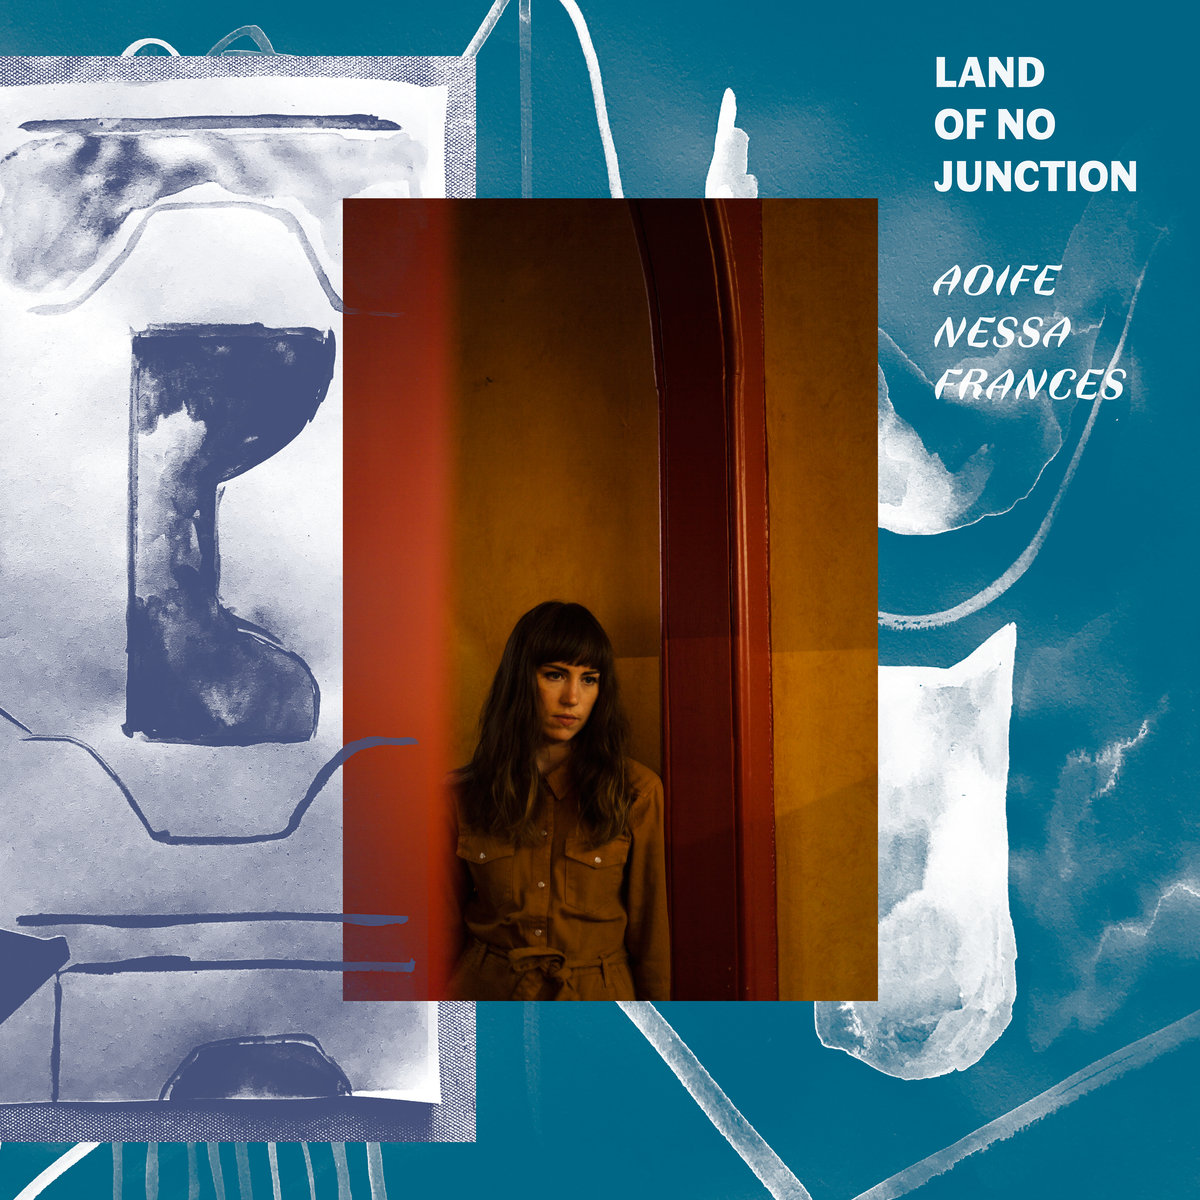 Aoife Nessa Frances' debut album Land of No Junction is hugely compelling